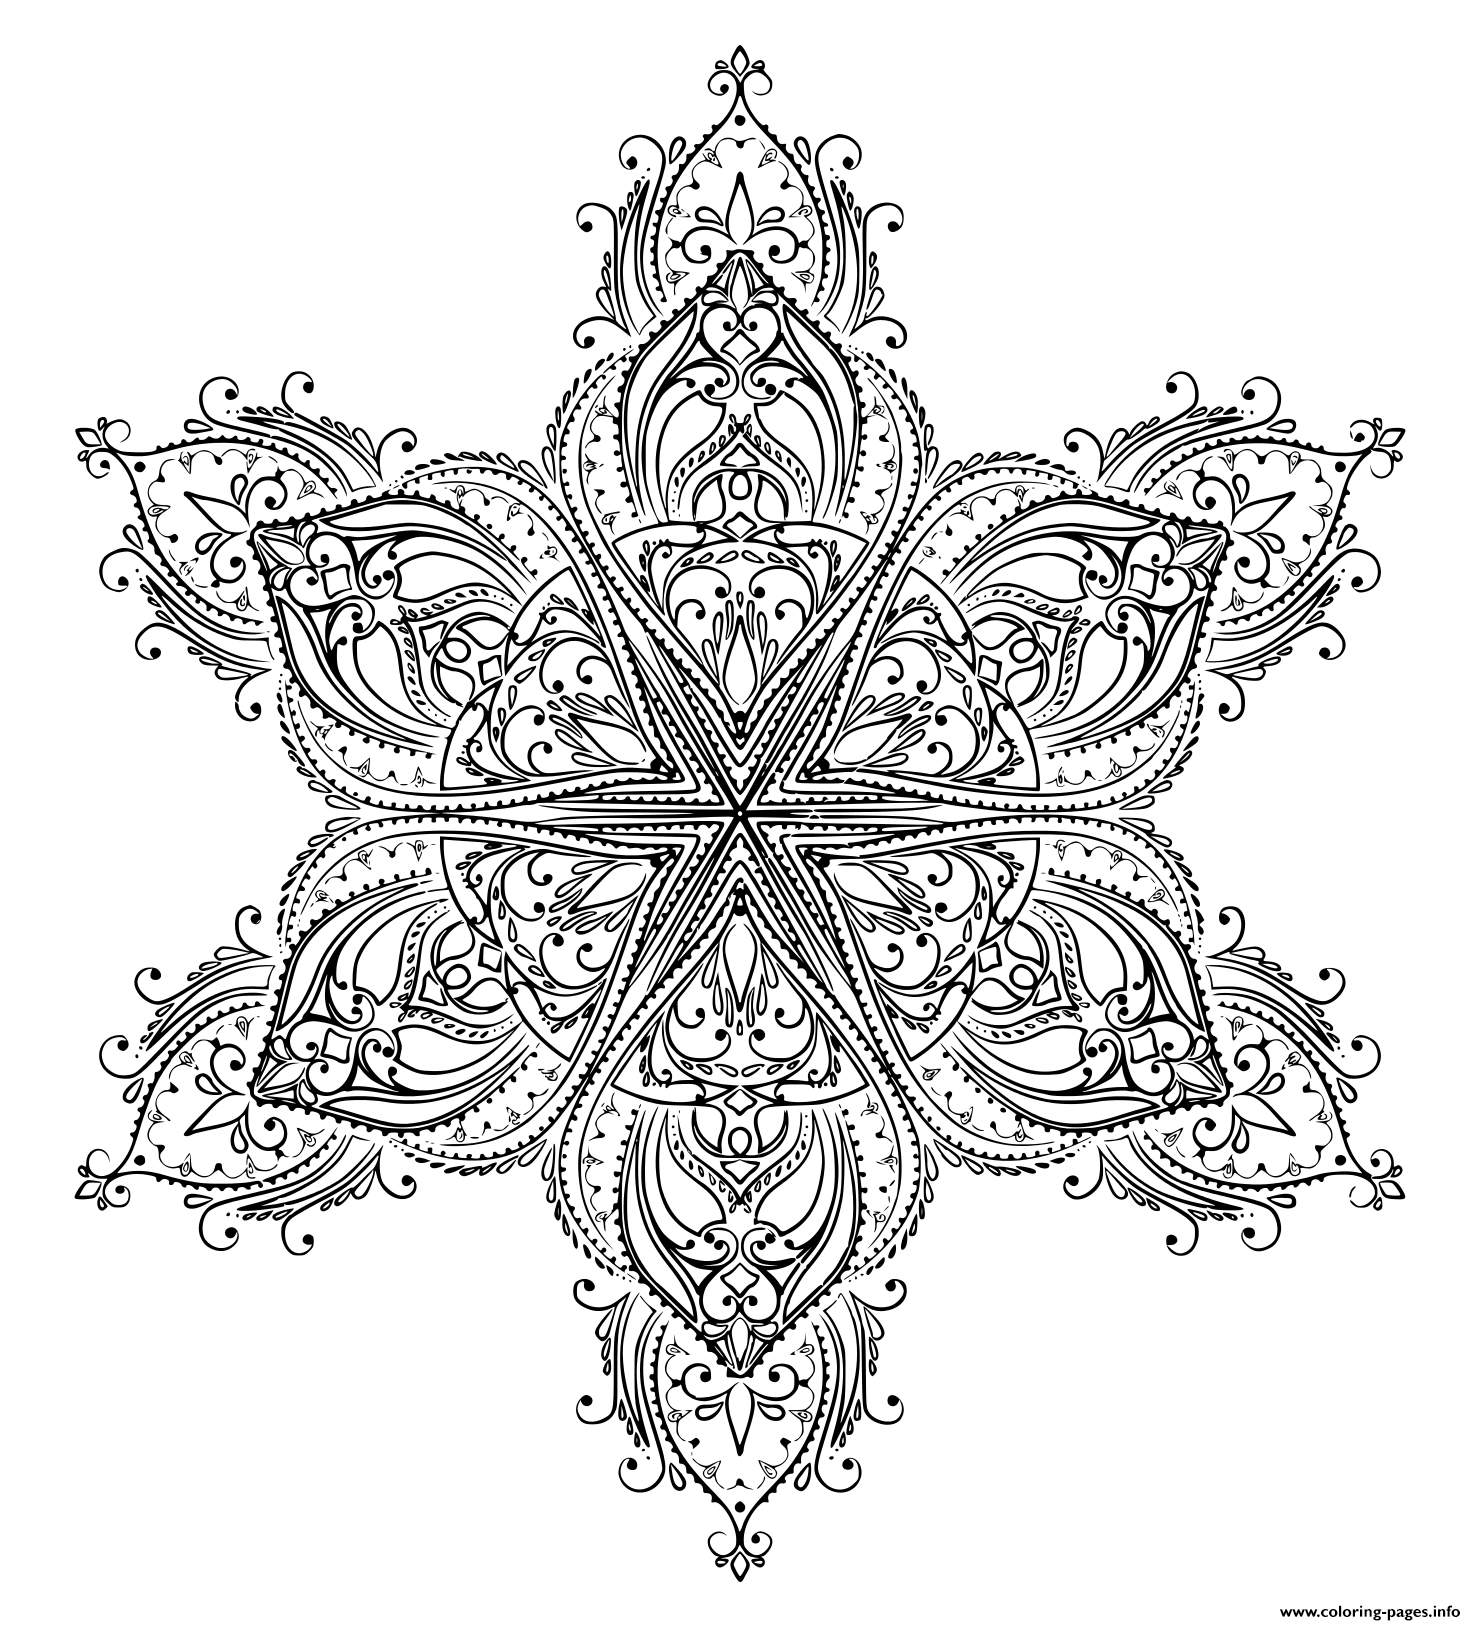 Mandala Shaped Star Adult coloring pages